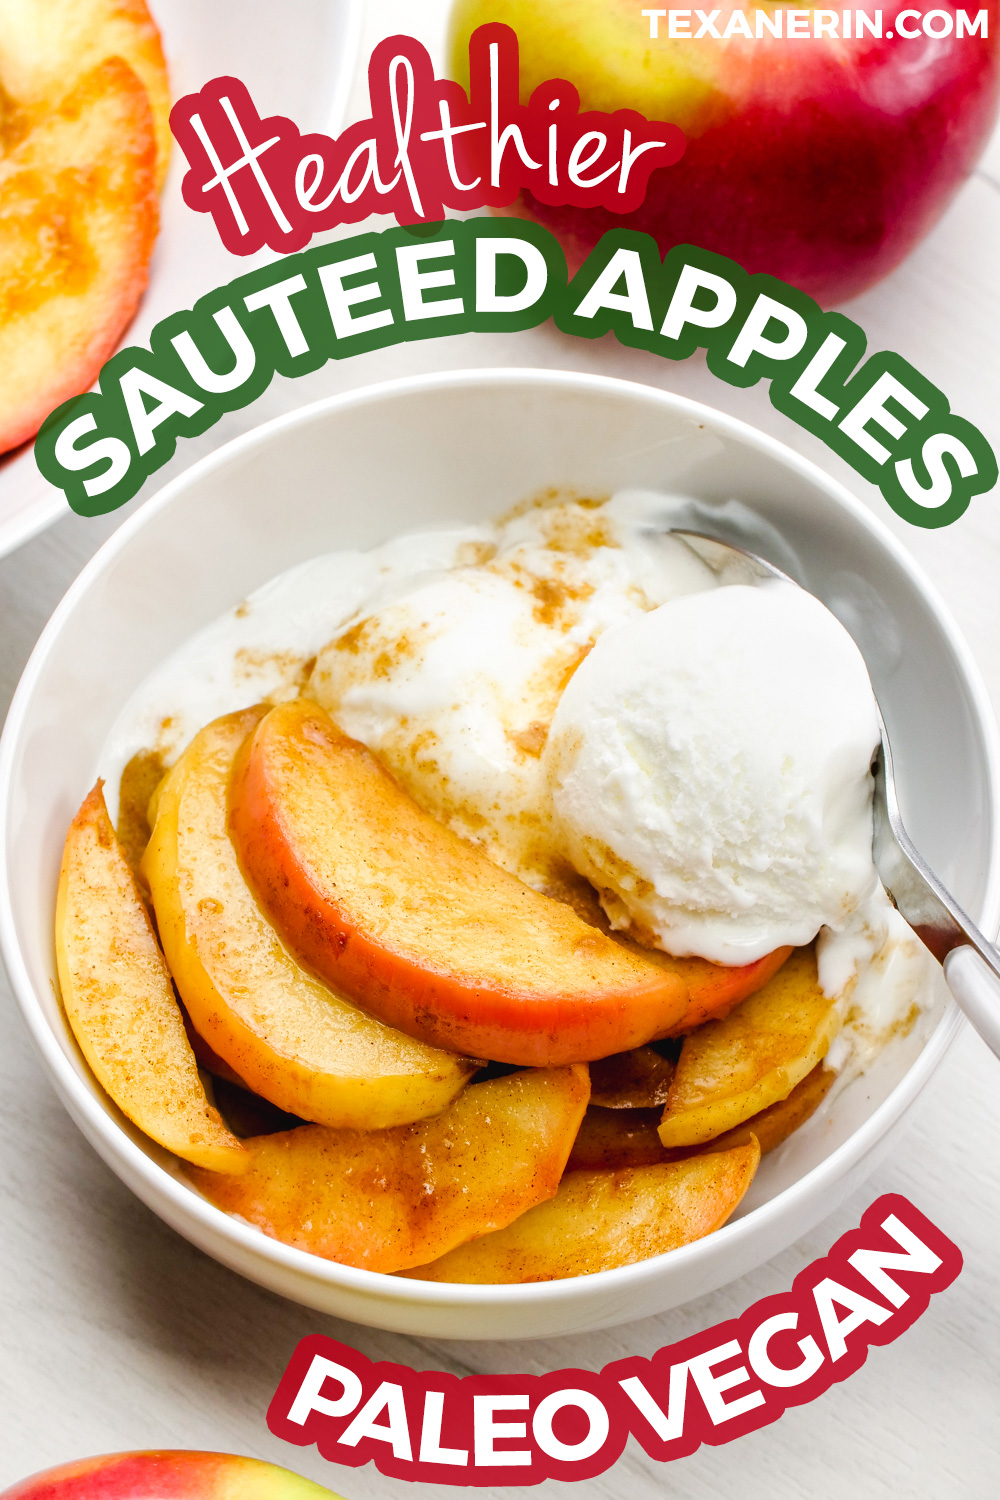 These delicious sauteed apples are lightly sweetened with maple syrup and are quick and easy to prepare! They're also gluten-free, vegan, paleo and dairy-free.